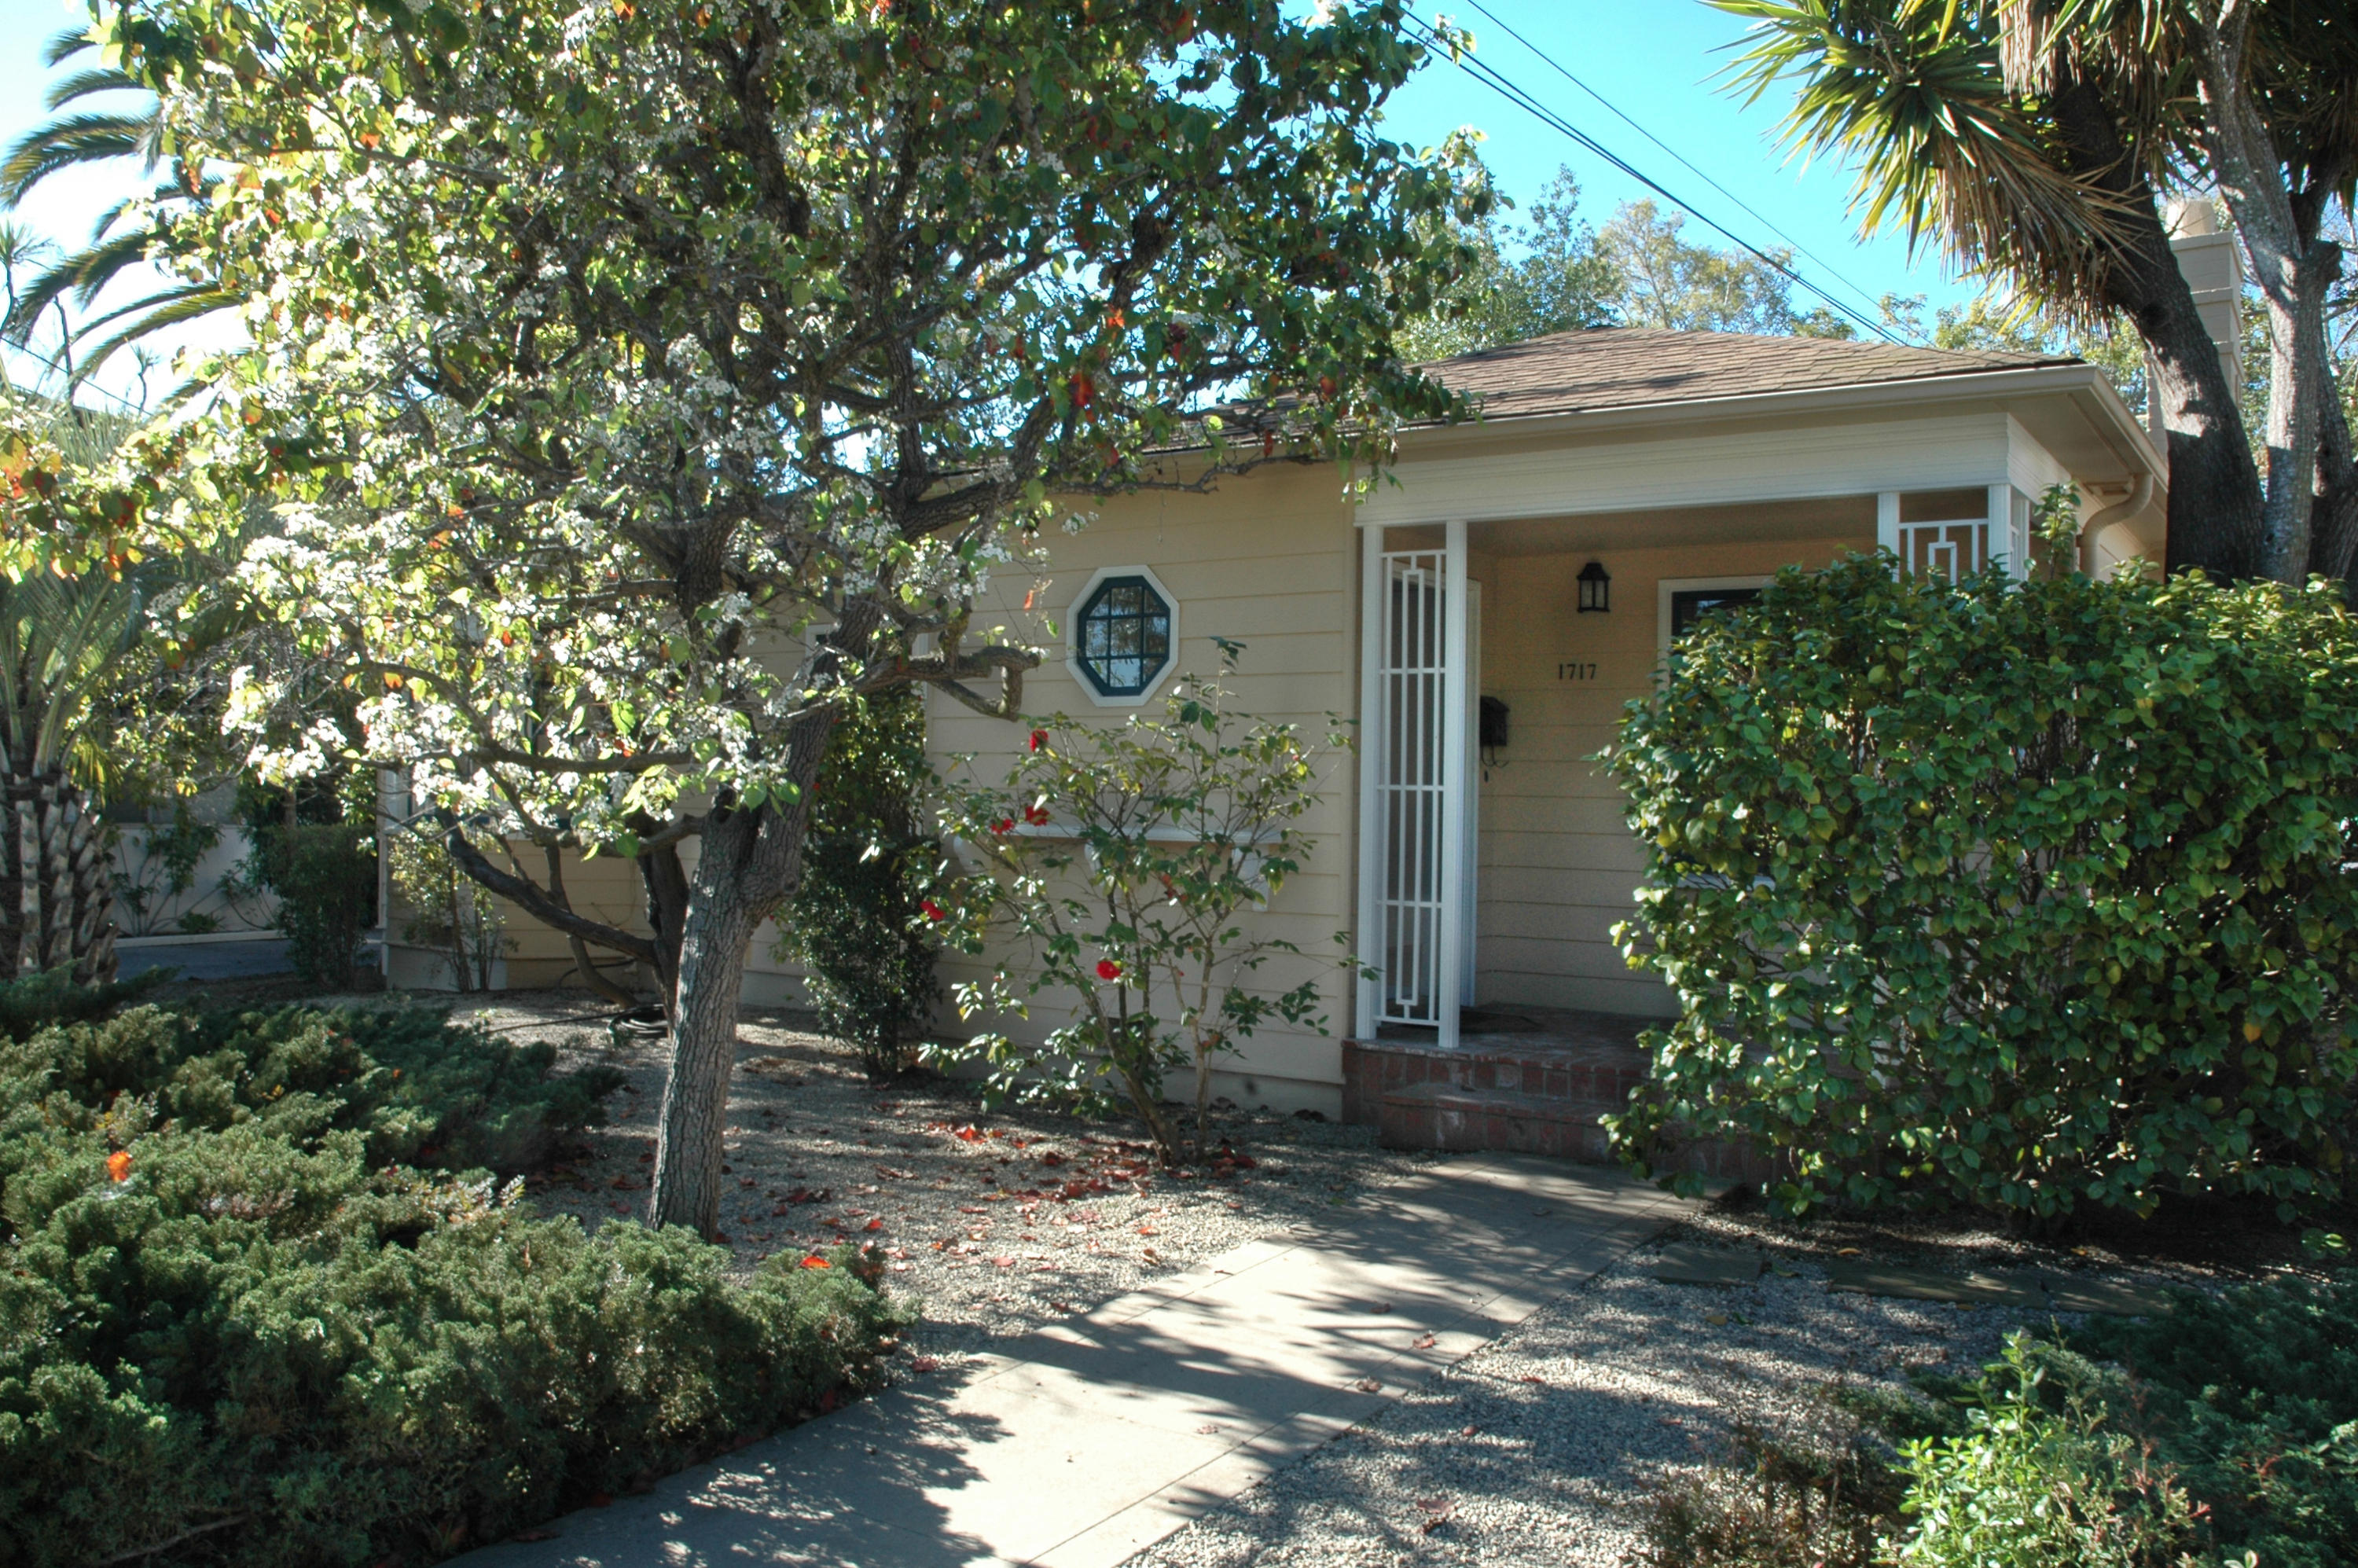 Property photo for 1717 Anacapa St Santa Barbara, California 93101 - 15-519